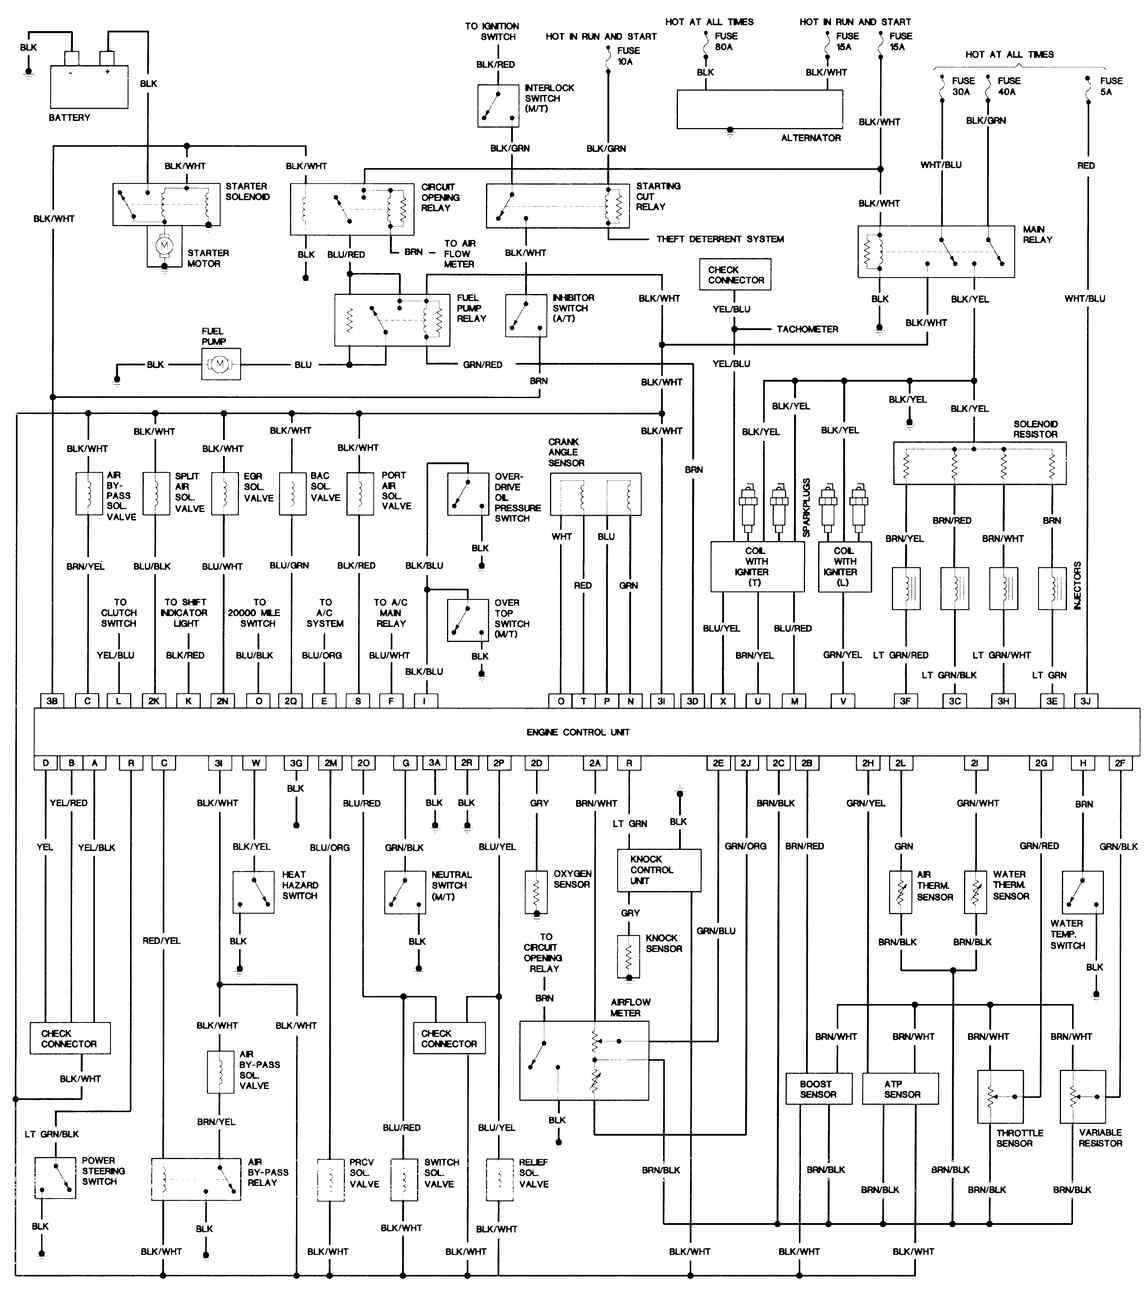 hight resolution of rx7 12a wiring diagram wiring diagram datasource 1987 mazda rx7 radio wiring diagram 1987 mazda rx7 wiring diagram